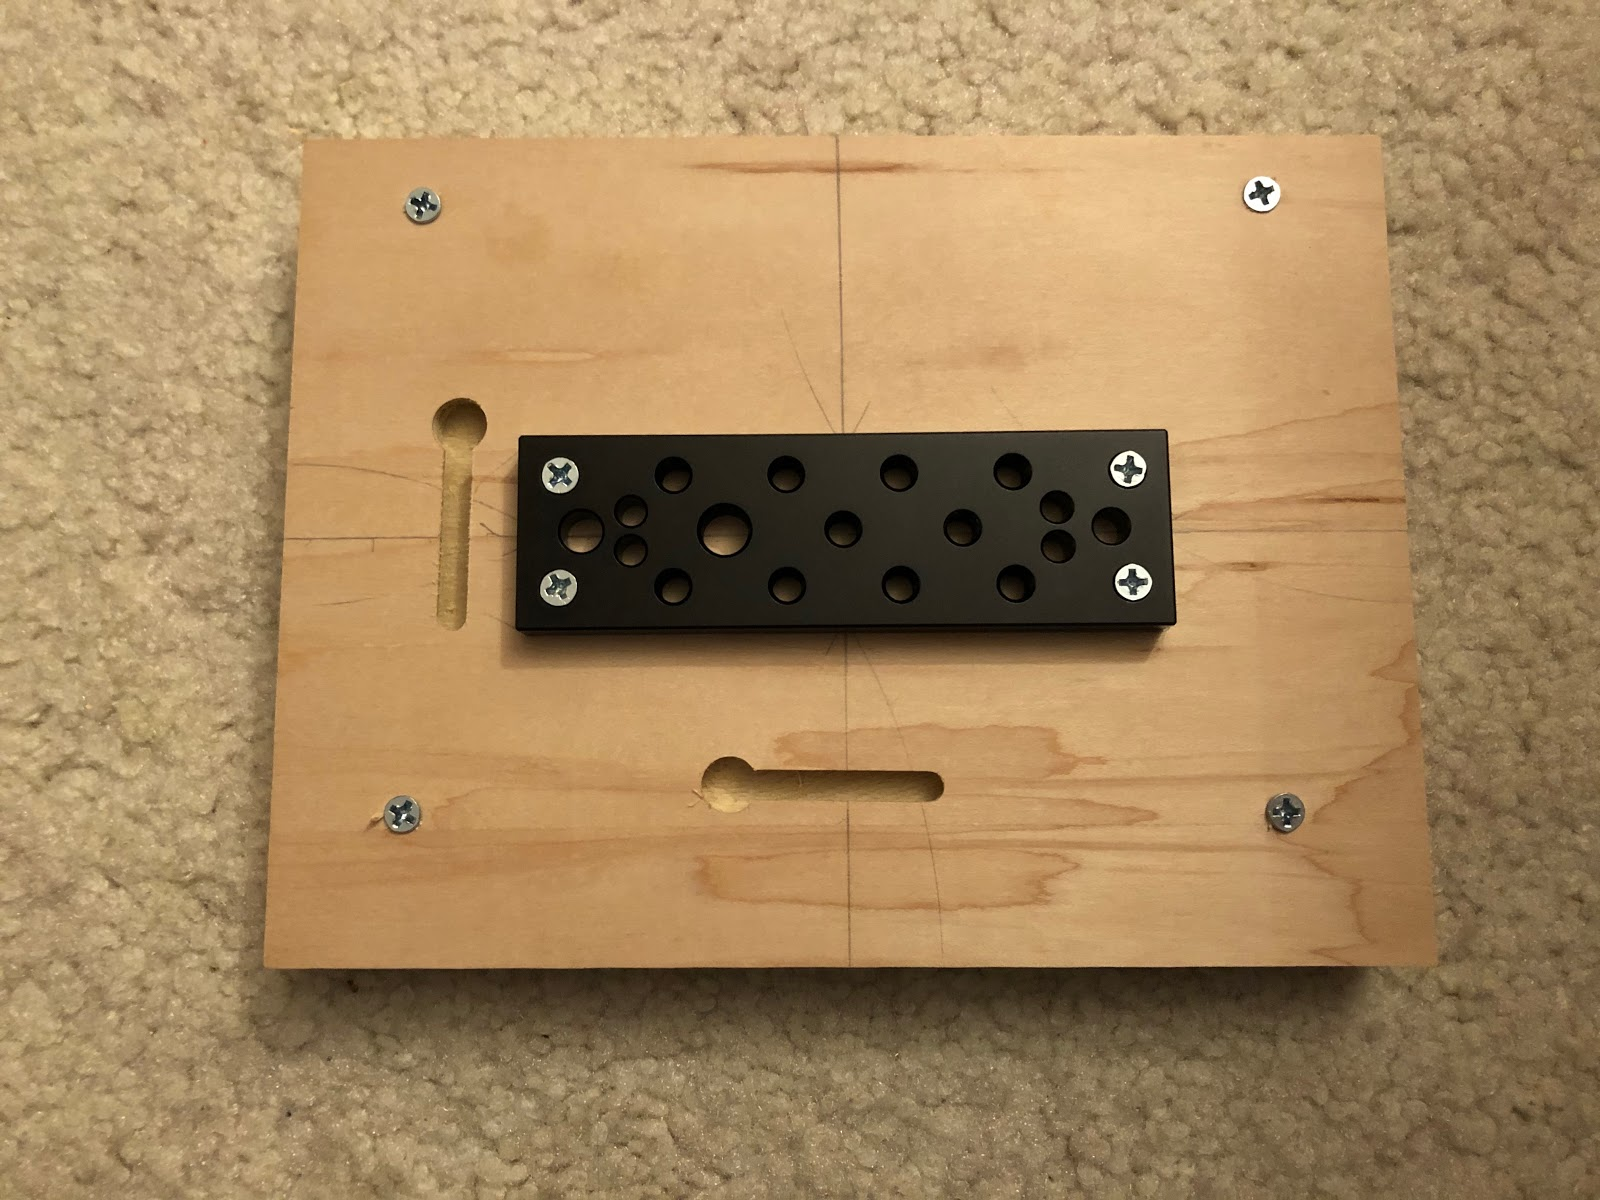 underside of art board with DIY mounting hardware